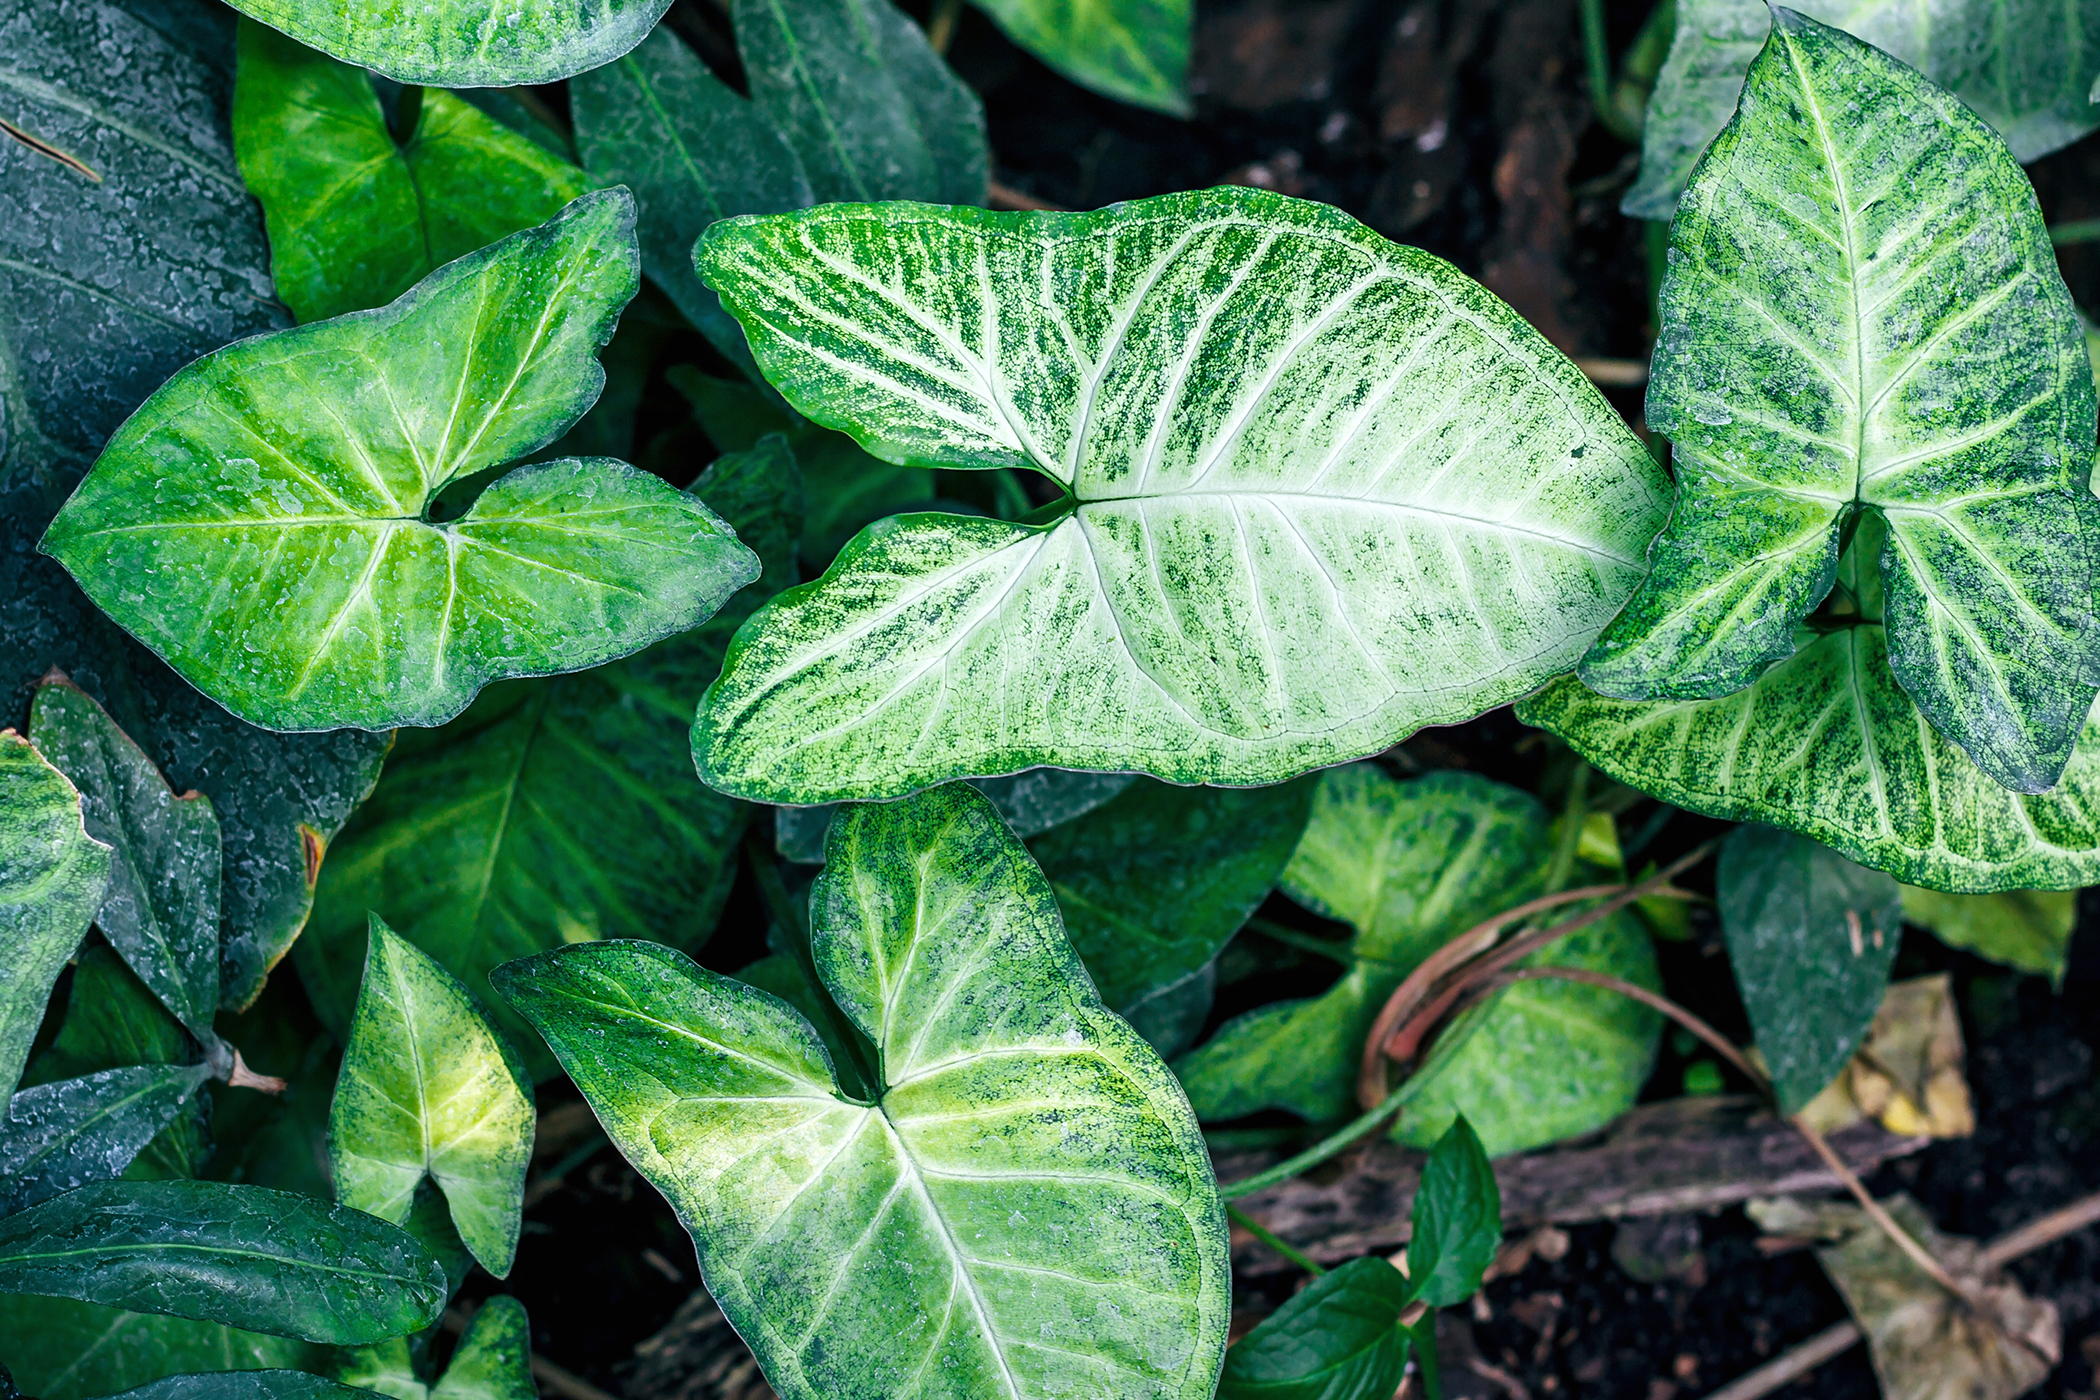 Arrowhead Vine Poisoning in Cats